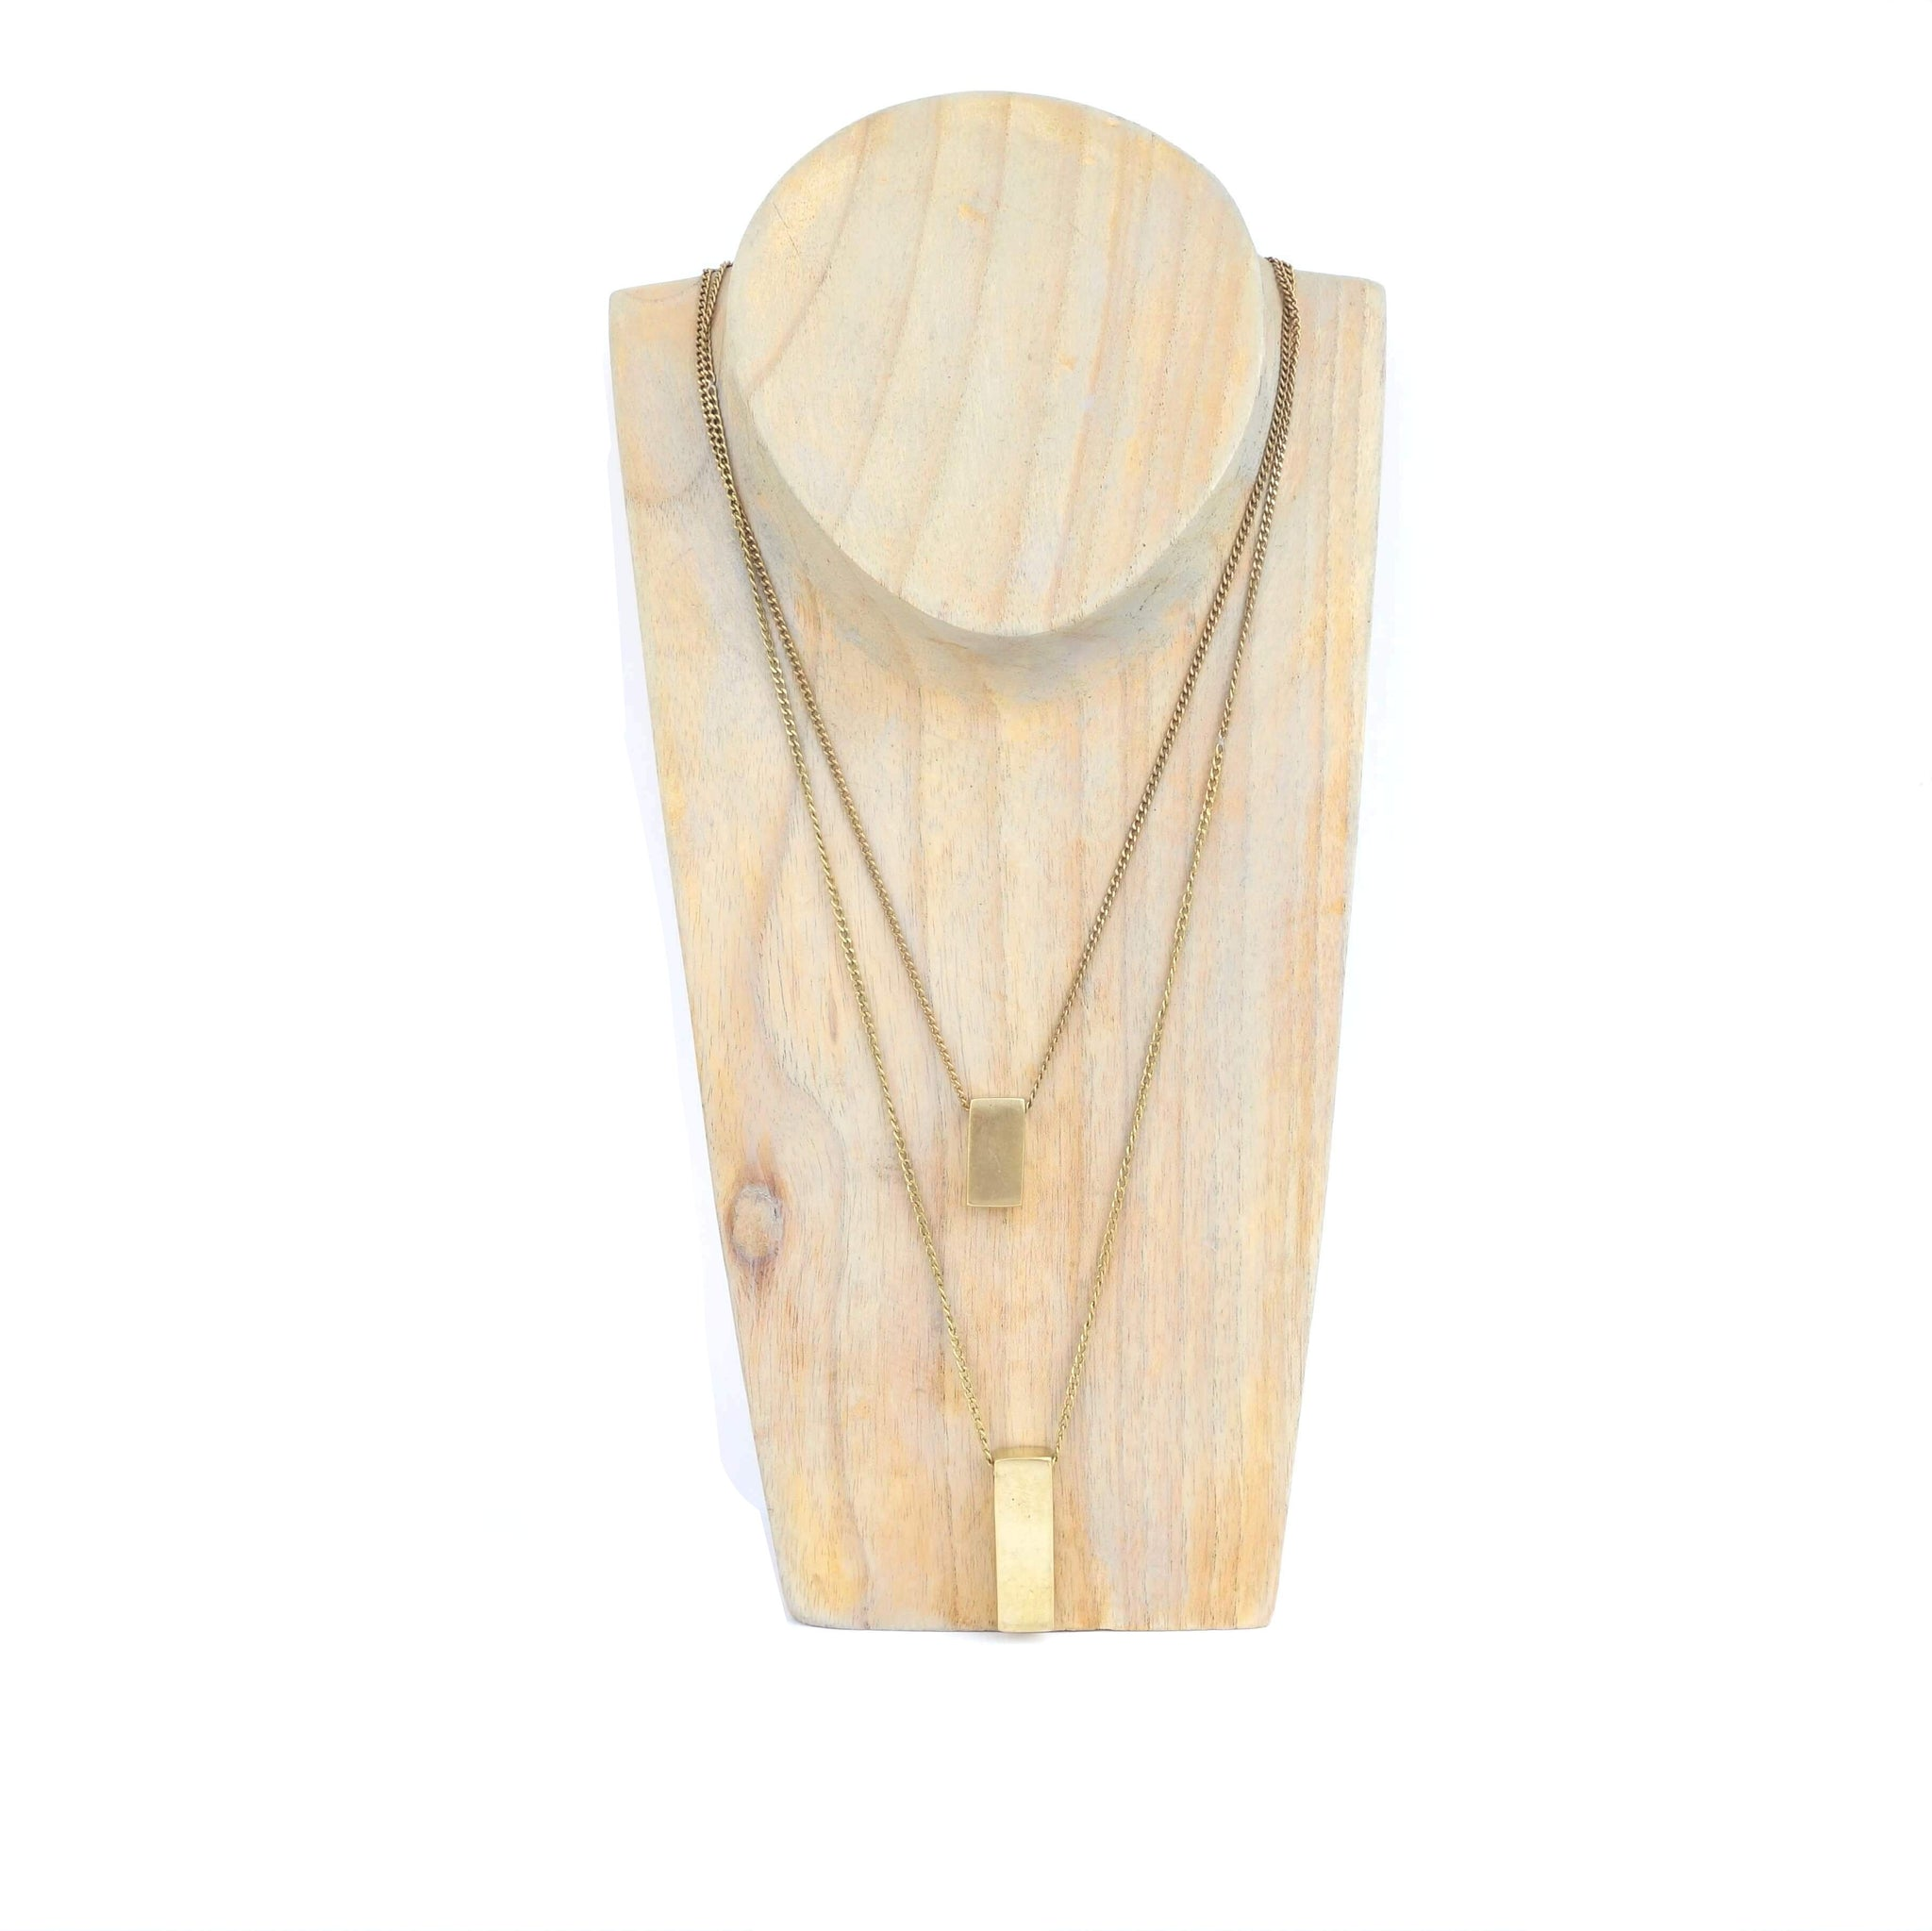 Recycled Brass Bar Pendants Necklace